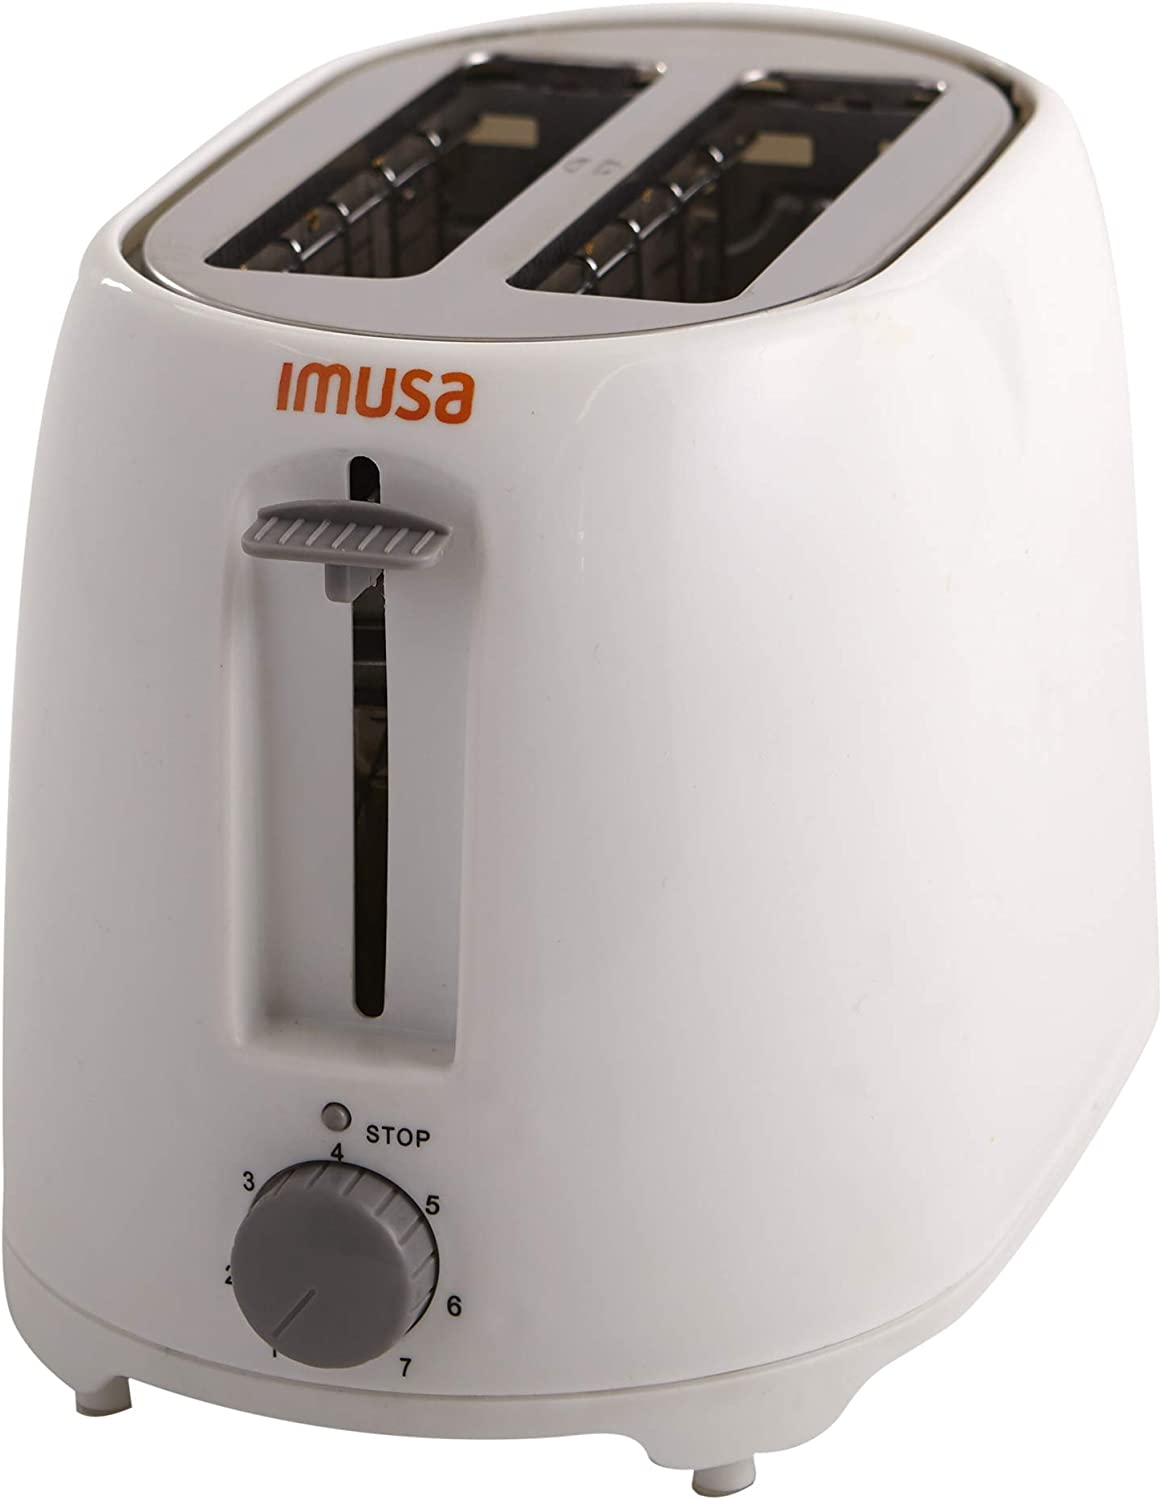 IMUSA USA GAU-80321W White 2-Slice Basic Cool Touch Toaster with Extra-Wide Slot for Bagels and Removable Crumb Tray